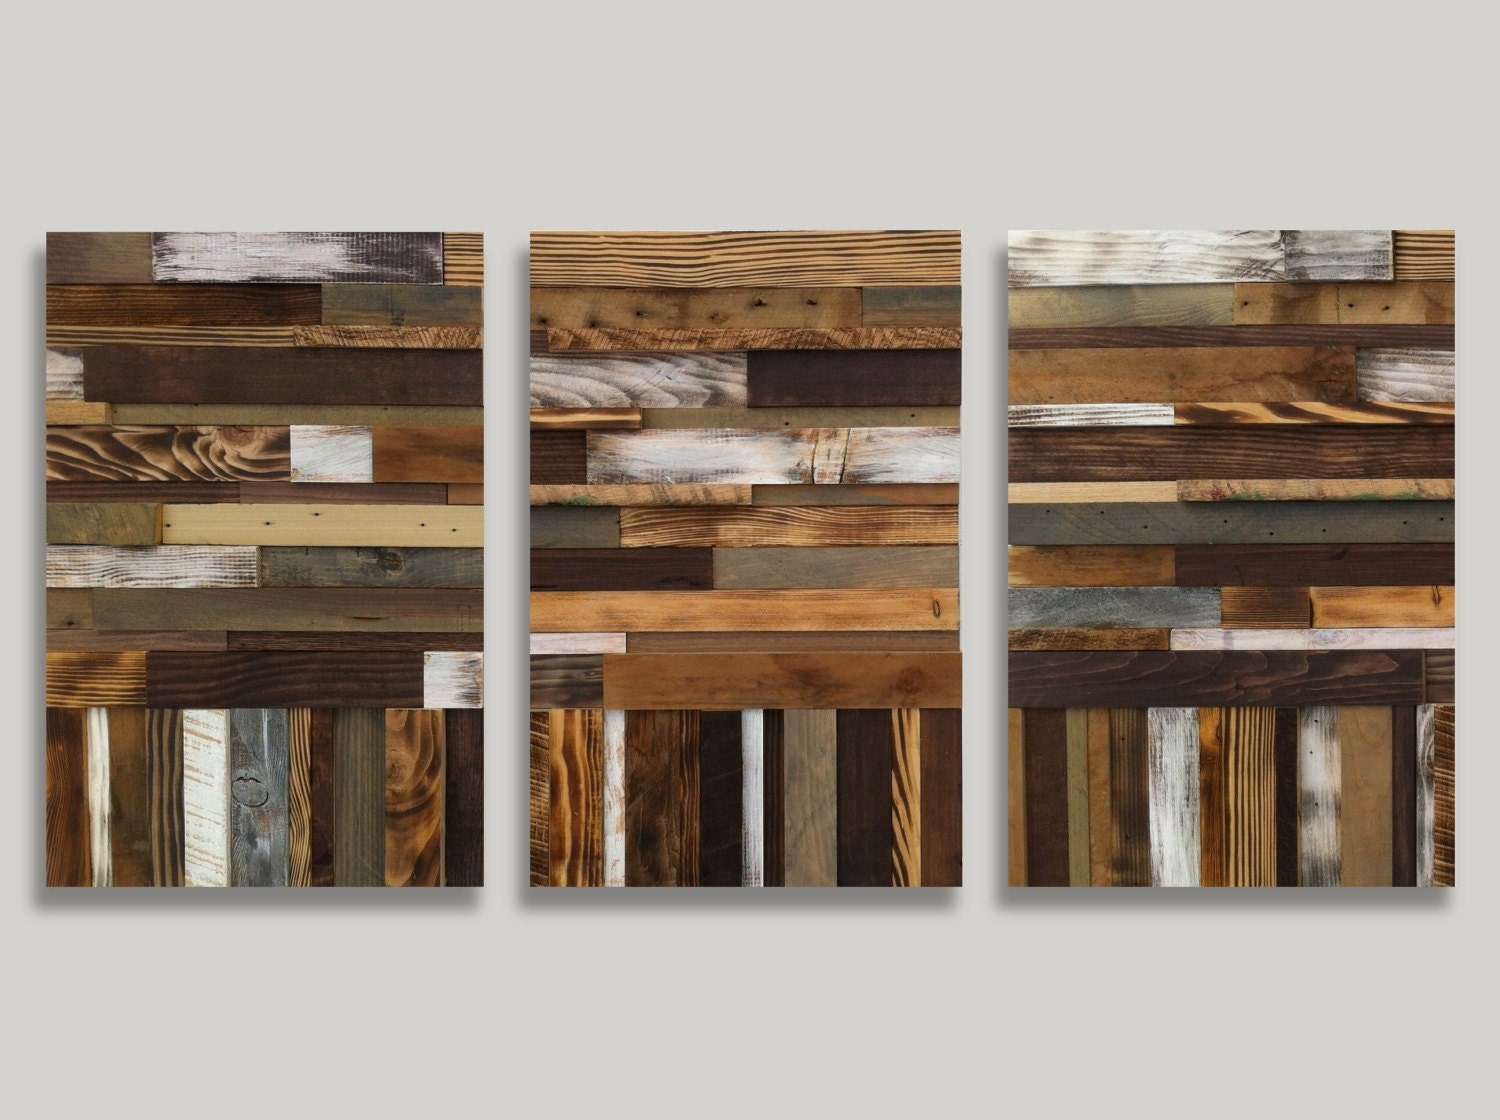 Barn Wood Wall Art reclaimed wood art *free shipping* wood wall sculpture, rustic